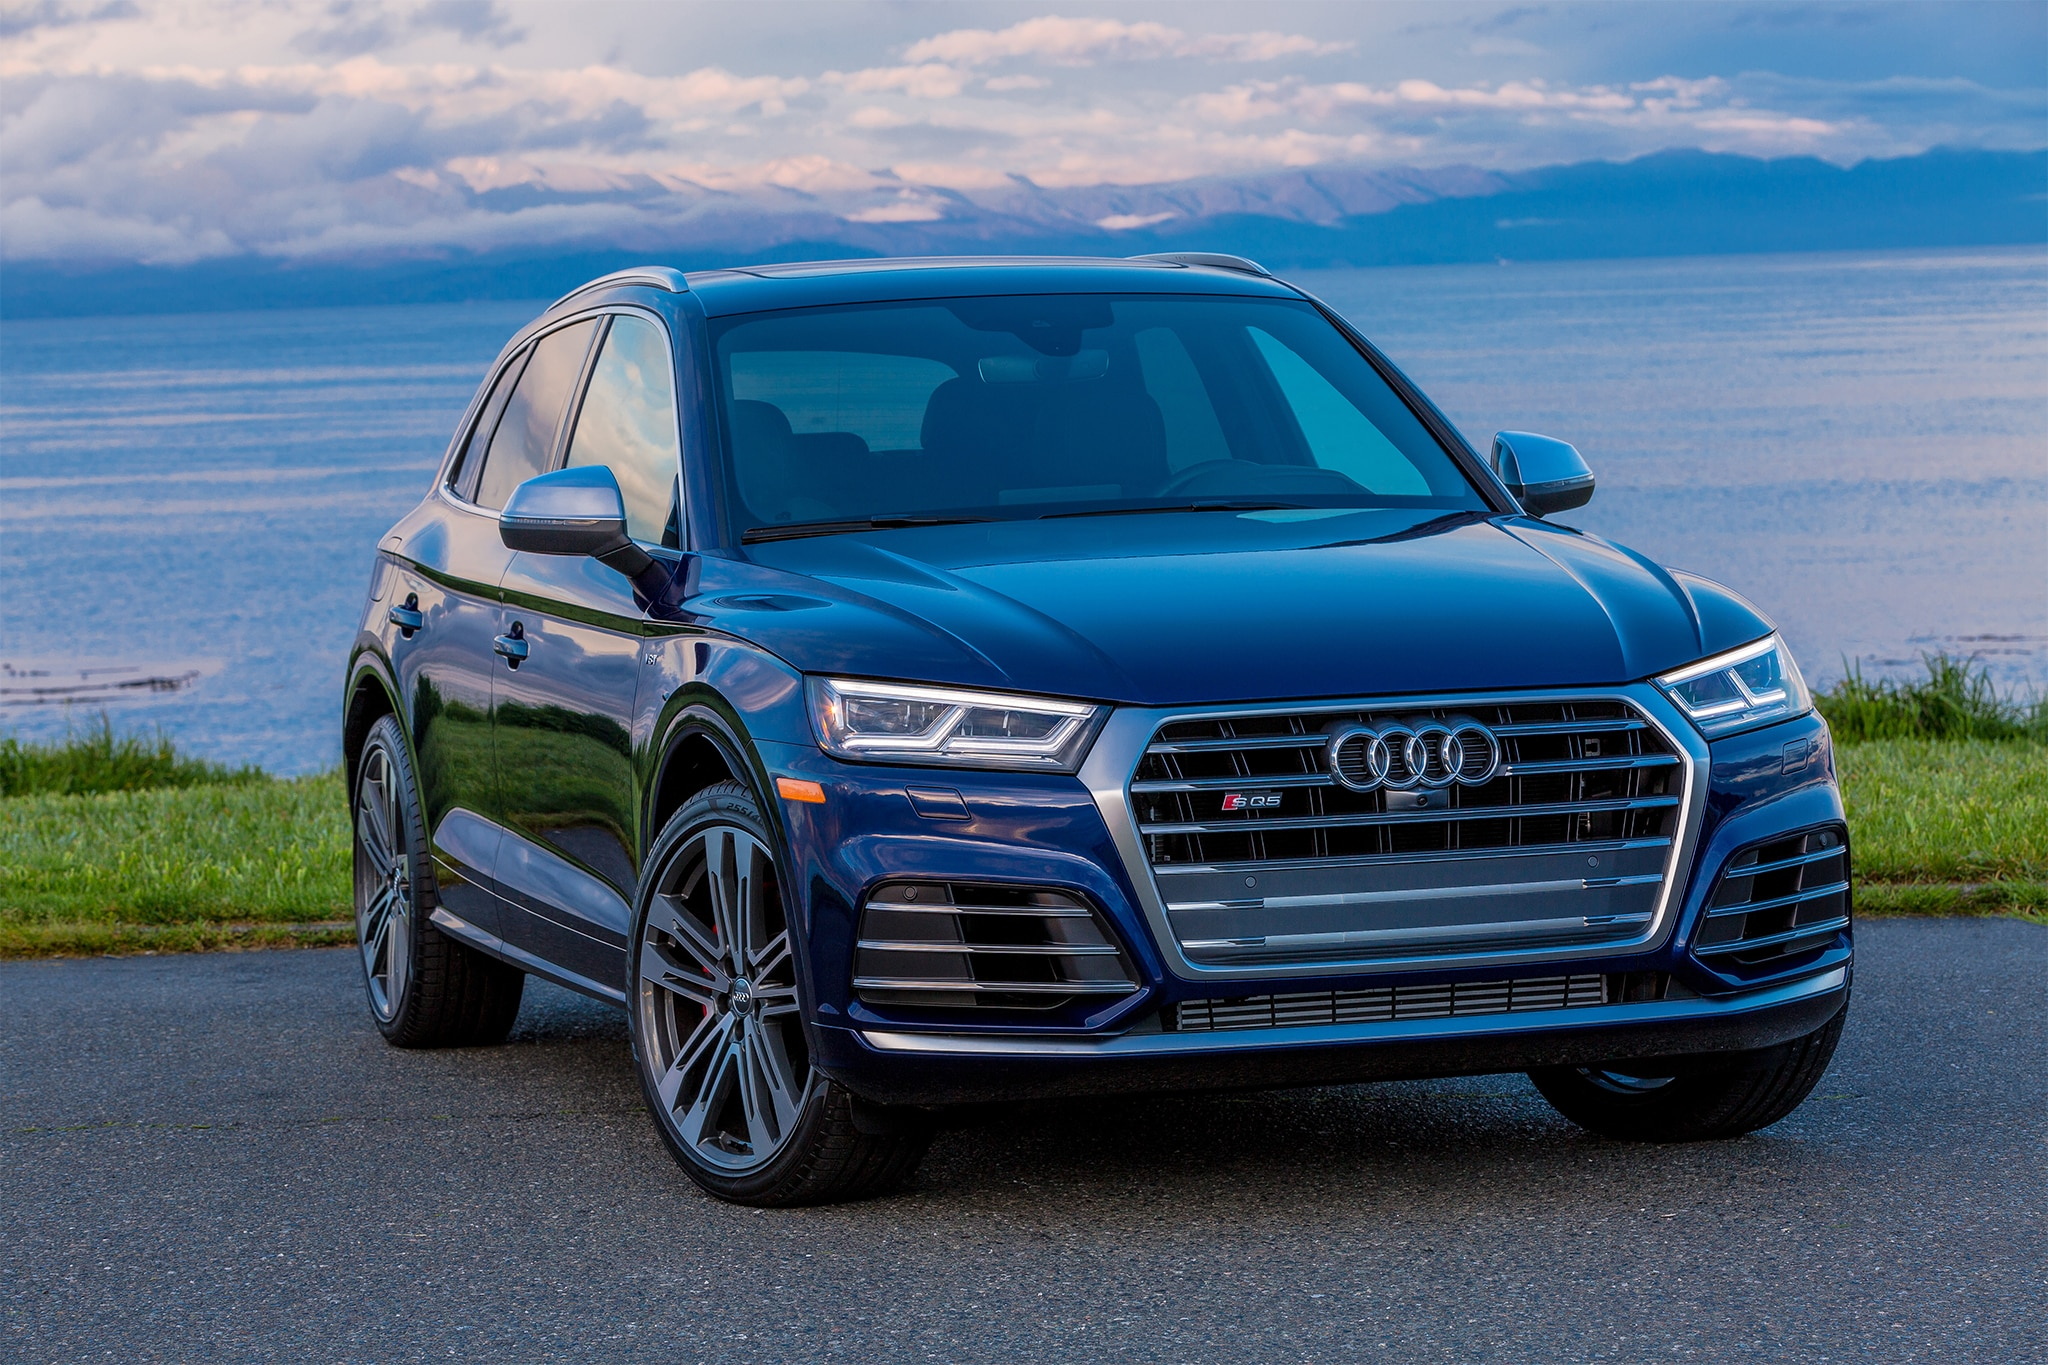 2018 Audi SQ5 First Drive Review | Automobile Magazine